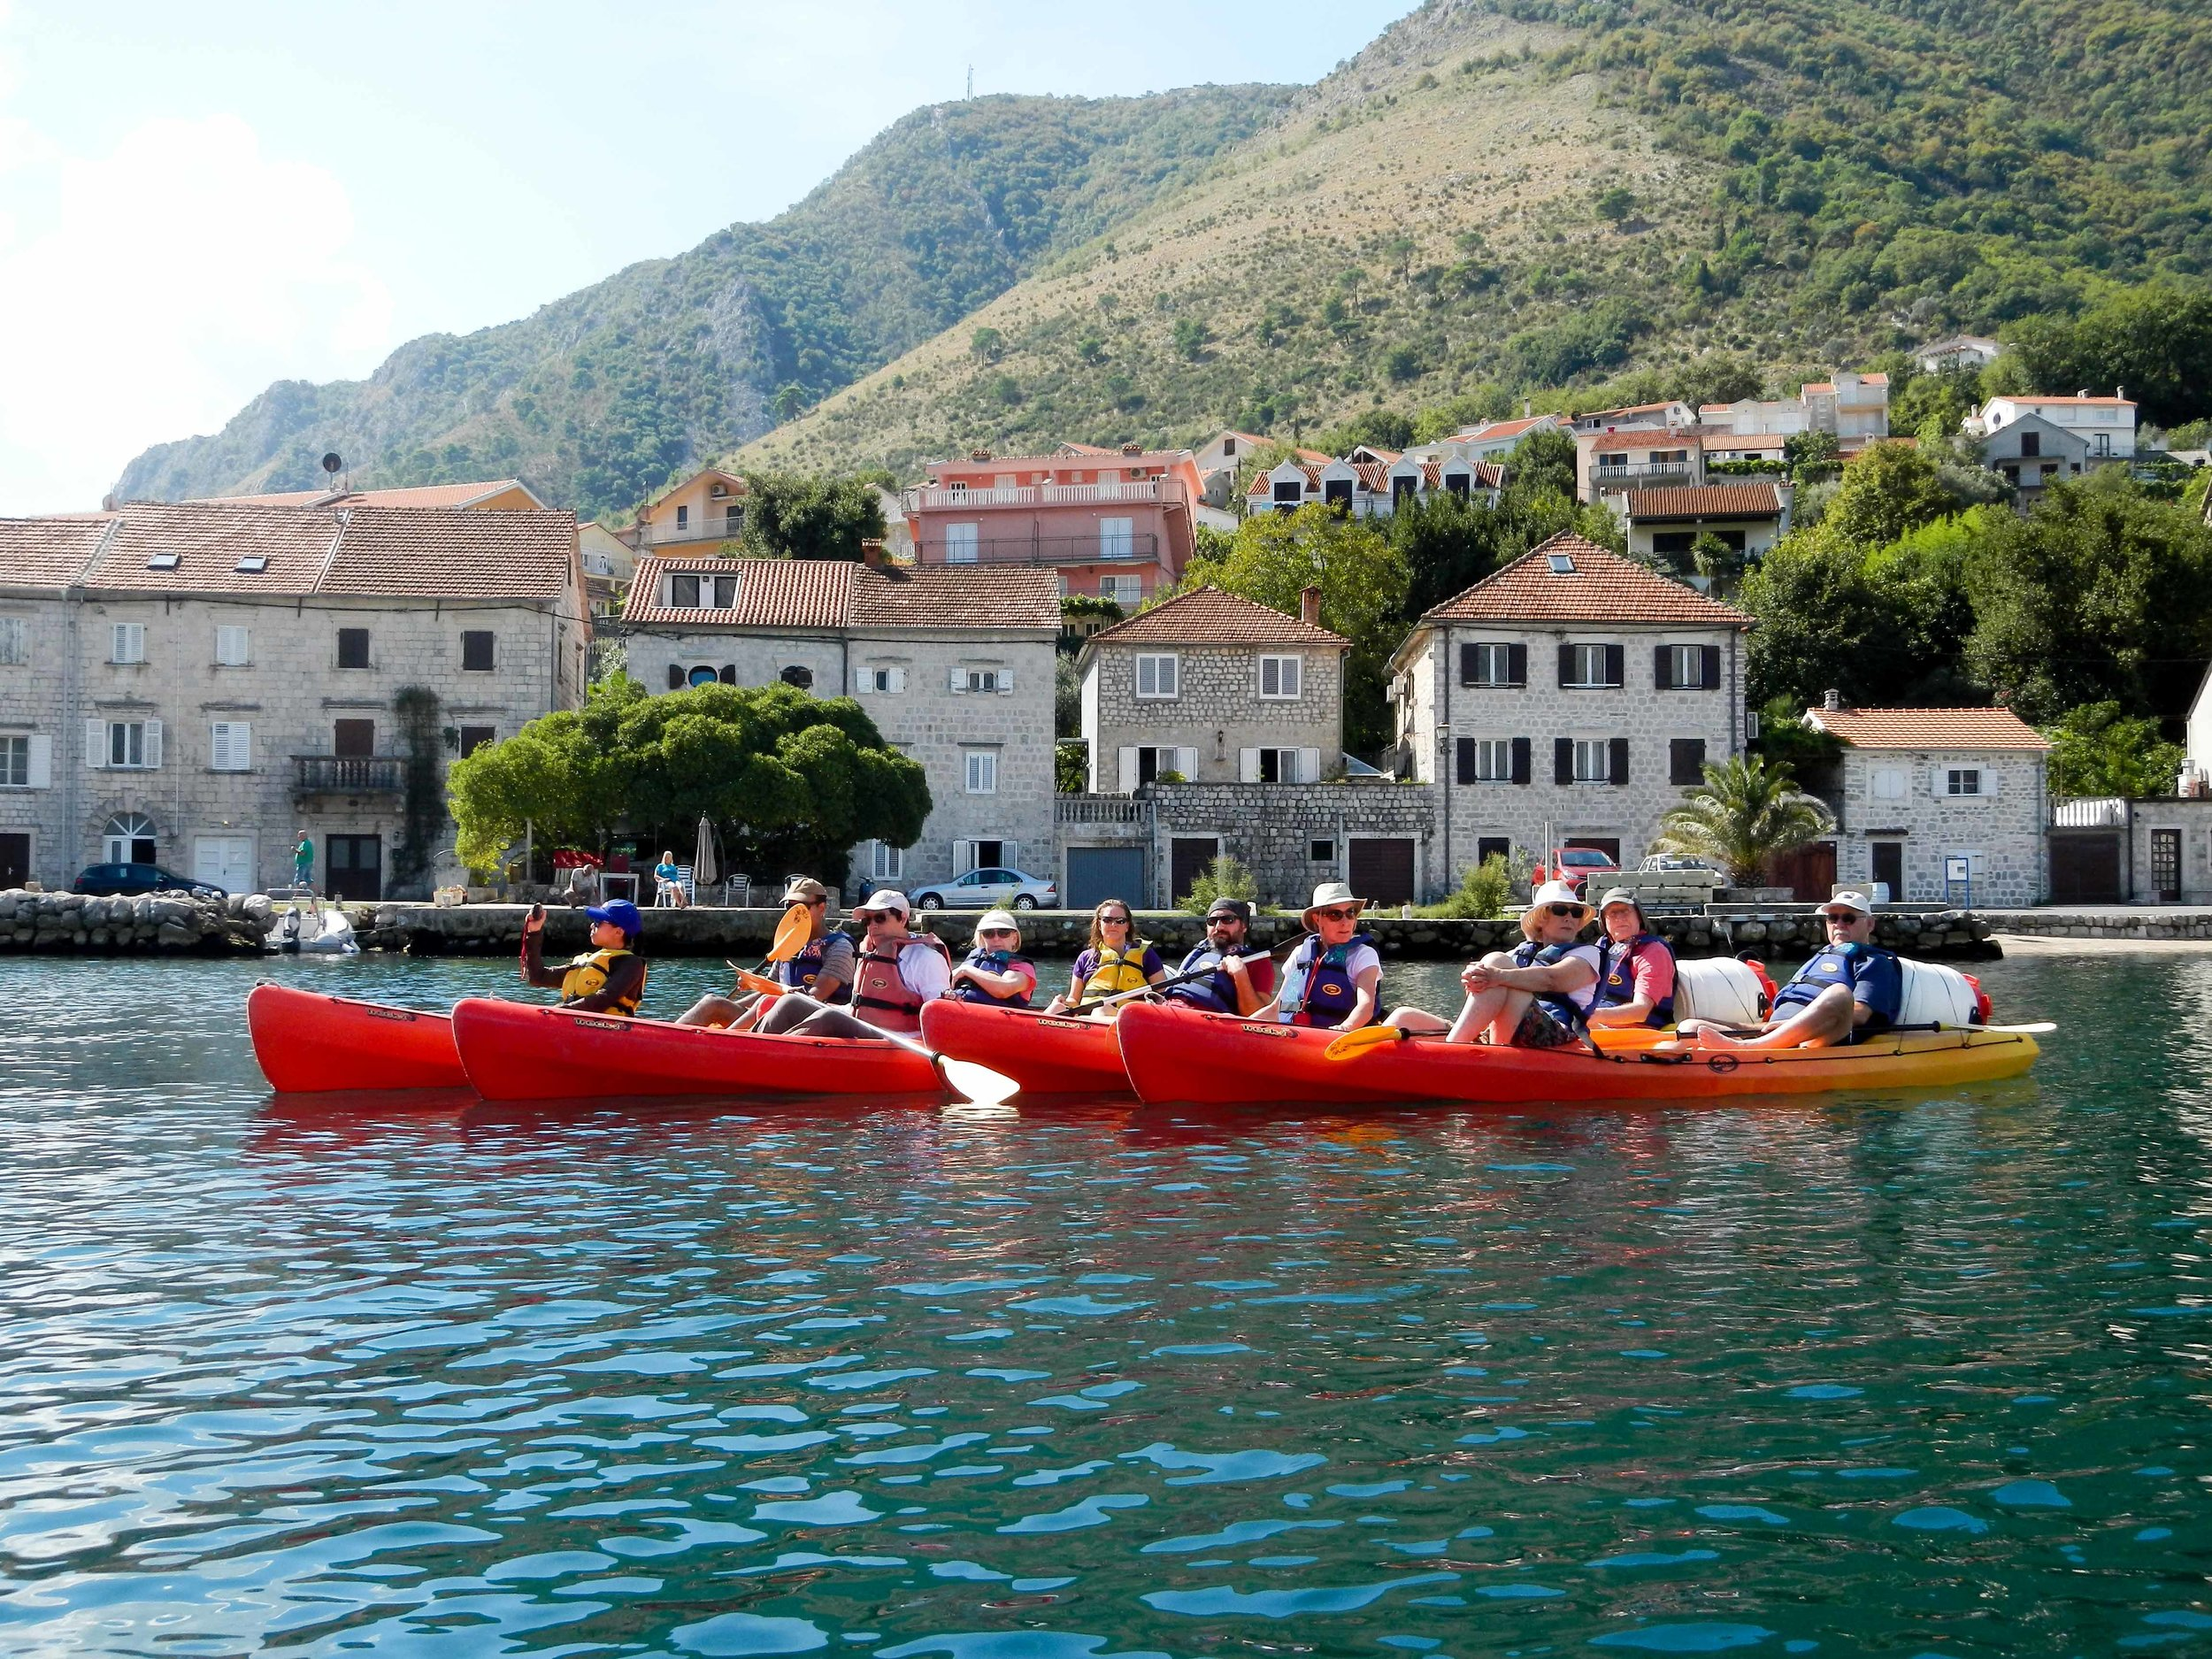 Group kayaking, Kotor, Montenegro